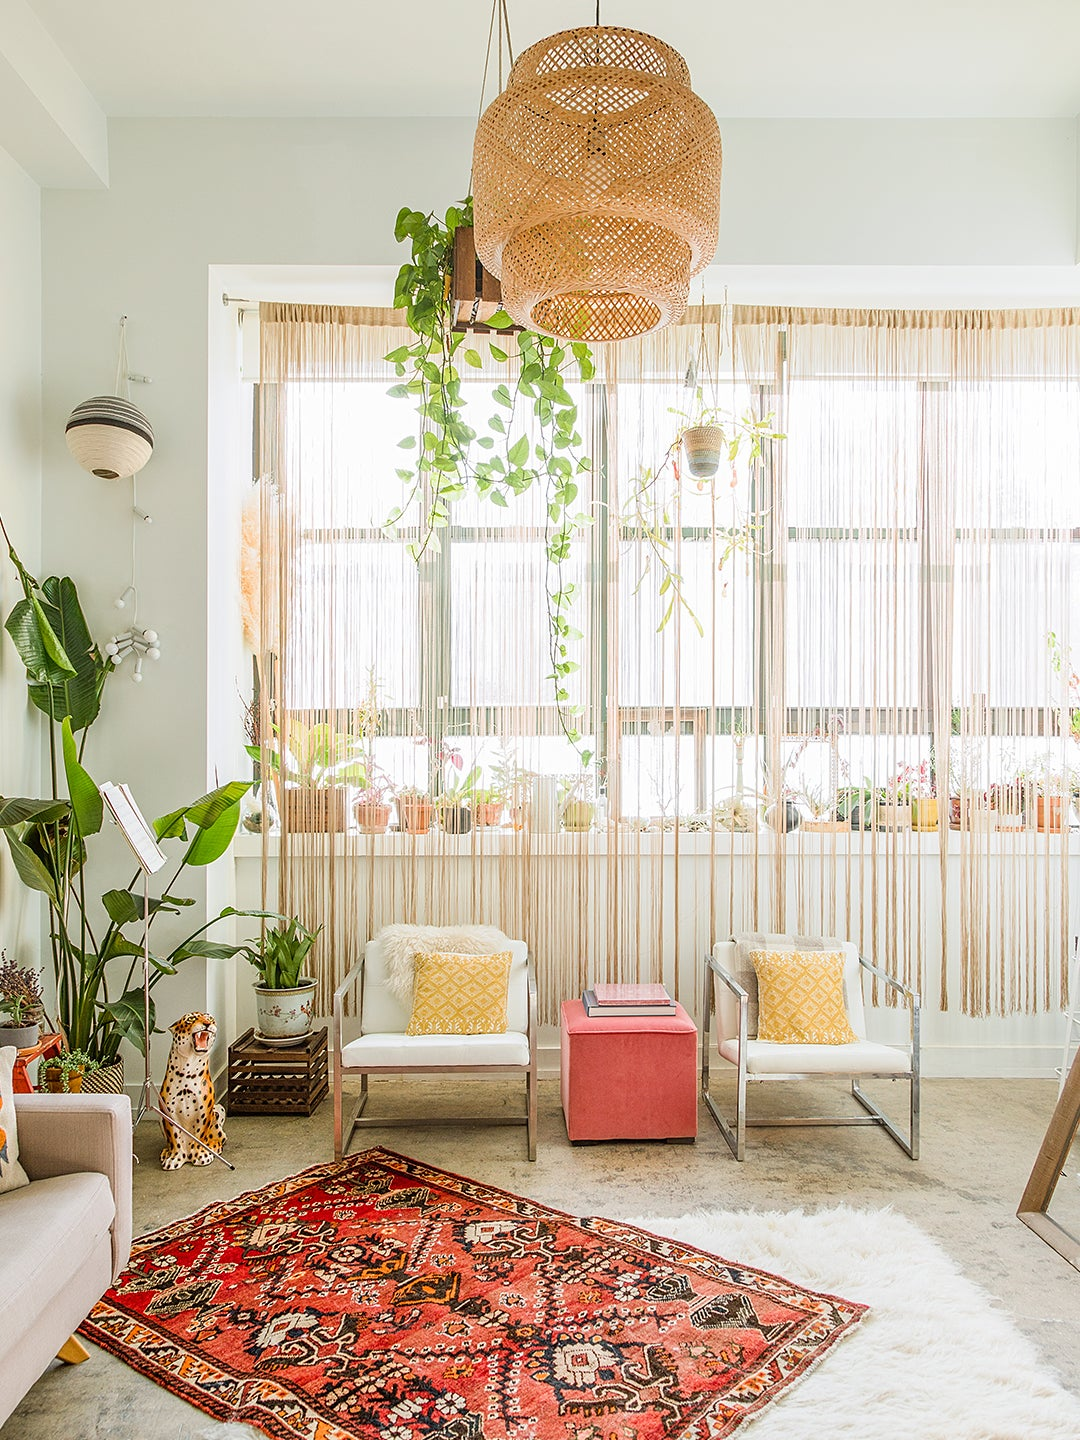 The Small-Space Plant Idea That's Trending in Dorms Right Now